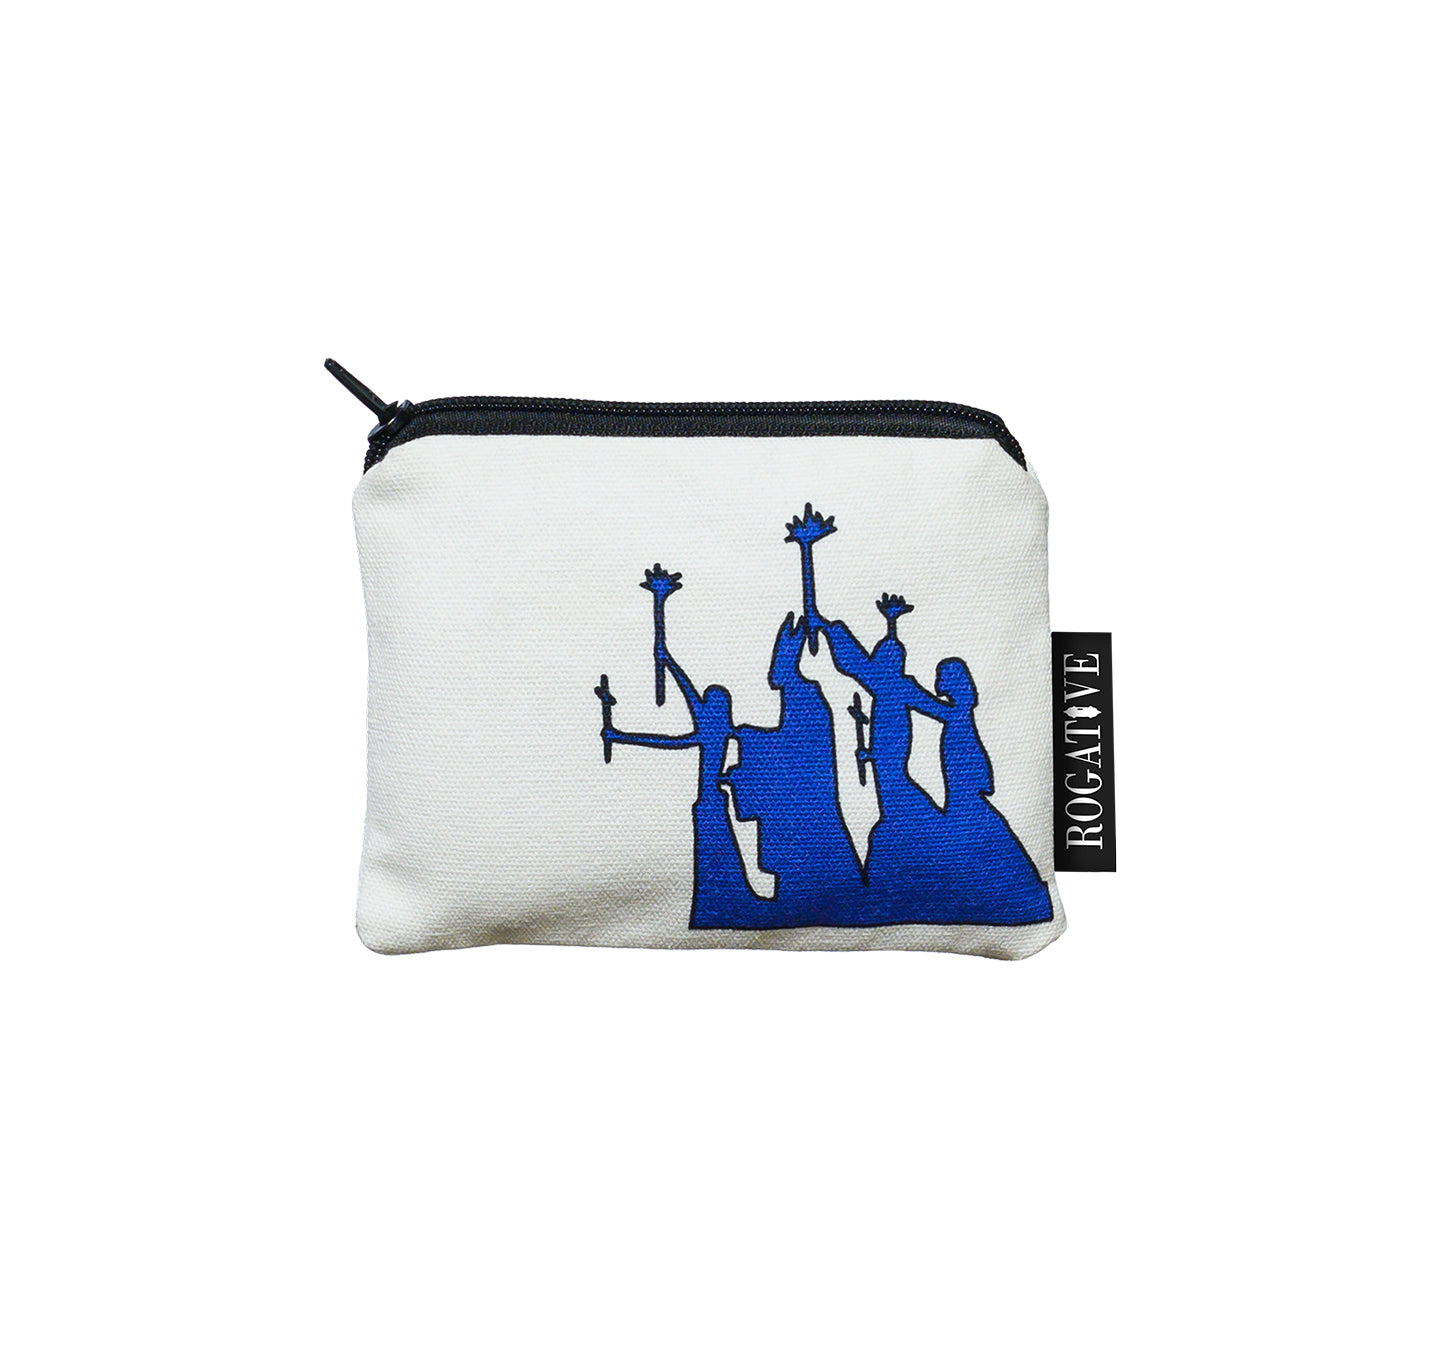 La Rogativa Mini Chuchería Bag